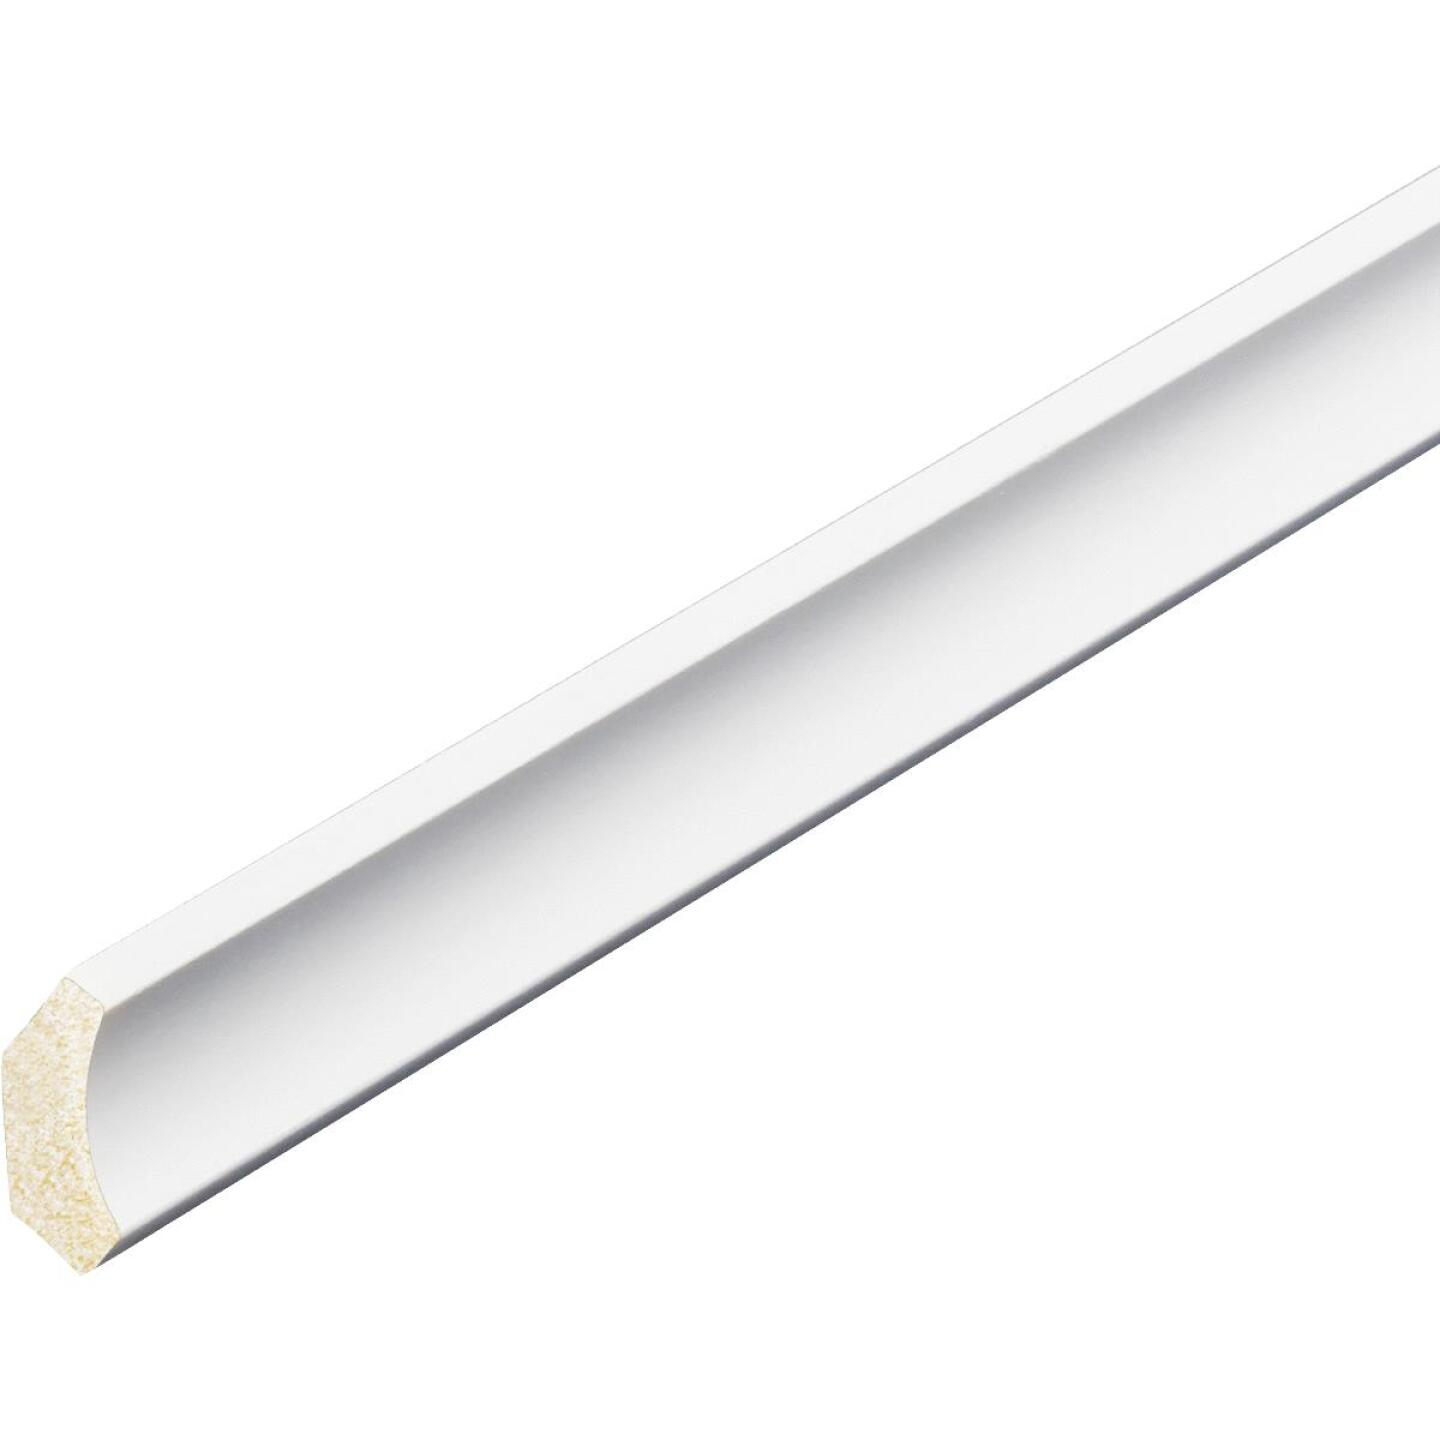 Inteplast Building Products 1/2 In. W. x 1-9/16 In. H. x 8 Ft. L. Crystal White Polystyrene Cove Molding Image 2